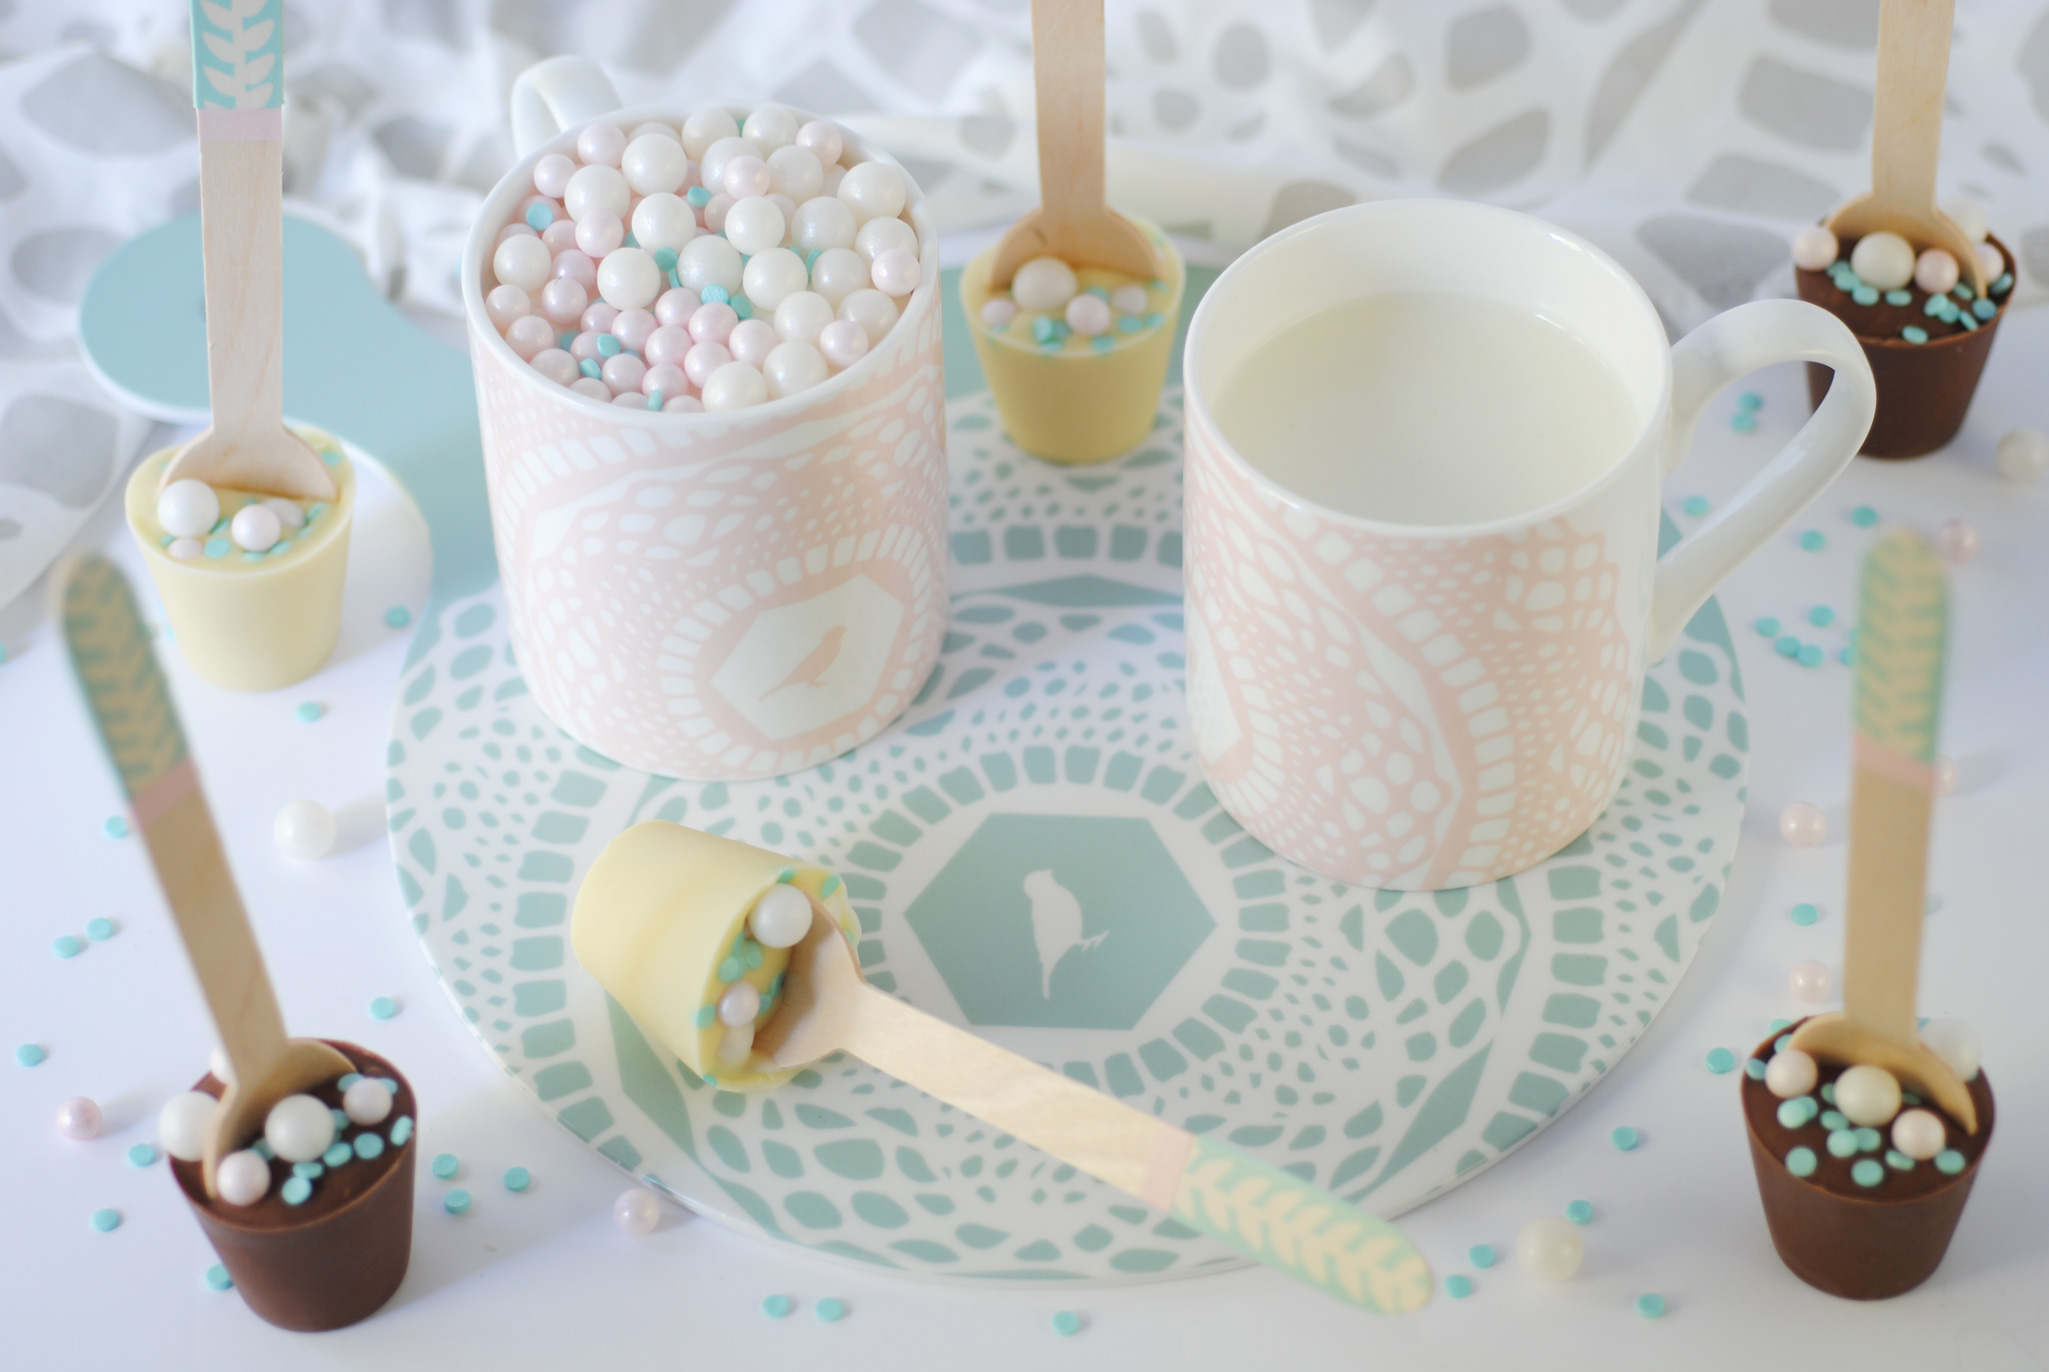 DIY Hot chocolate spoons with Mug filled with sugar balls and candy confetti